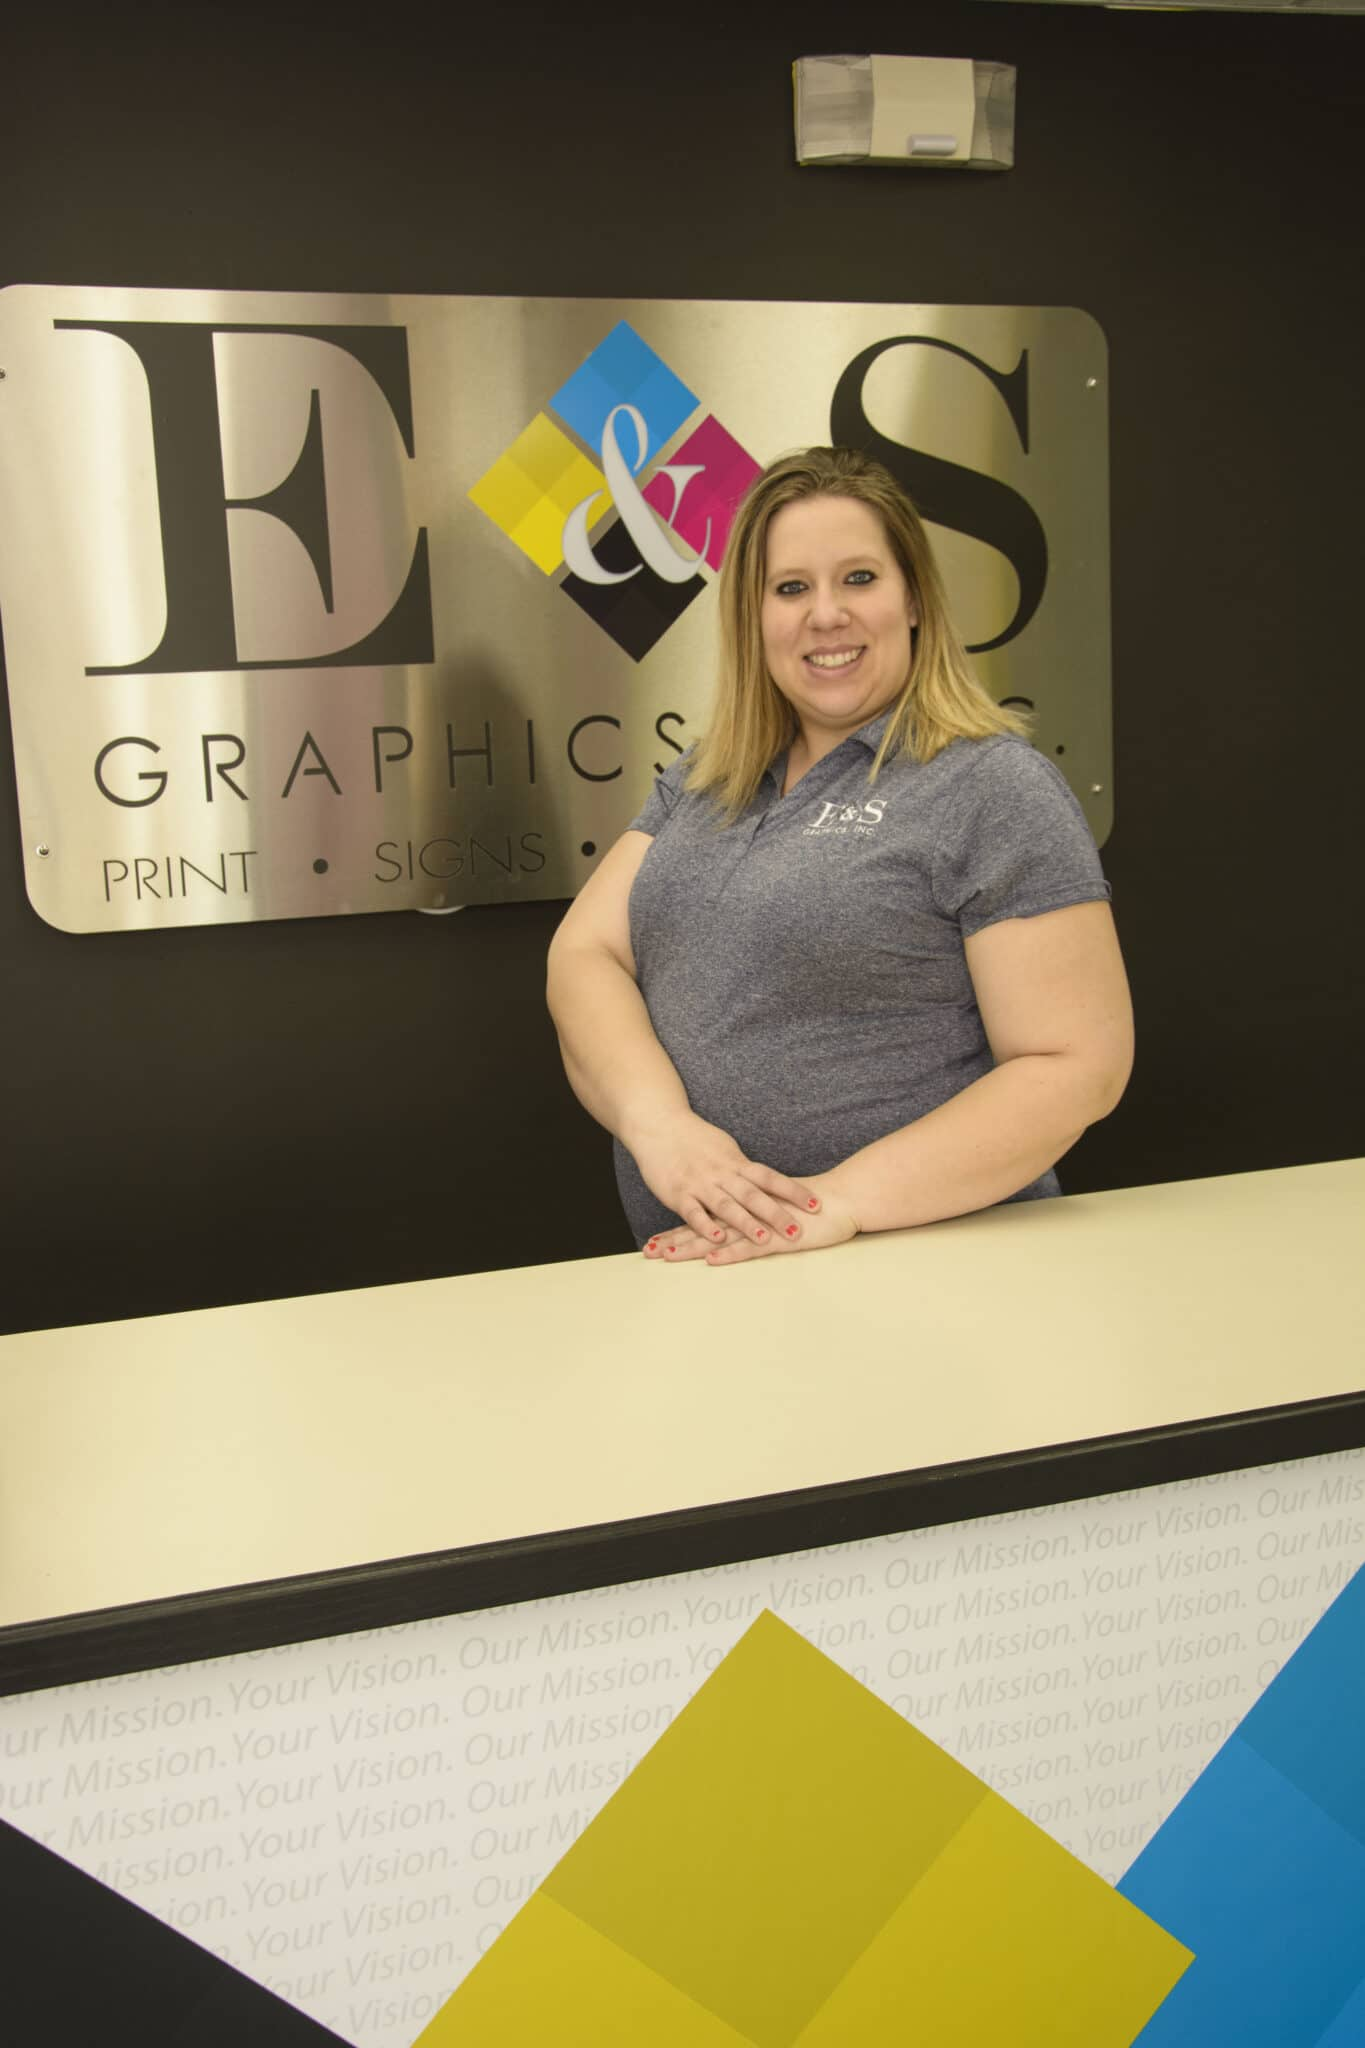 Brittney Bushre, Print Production Specialist, E & S Graphics